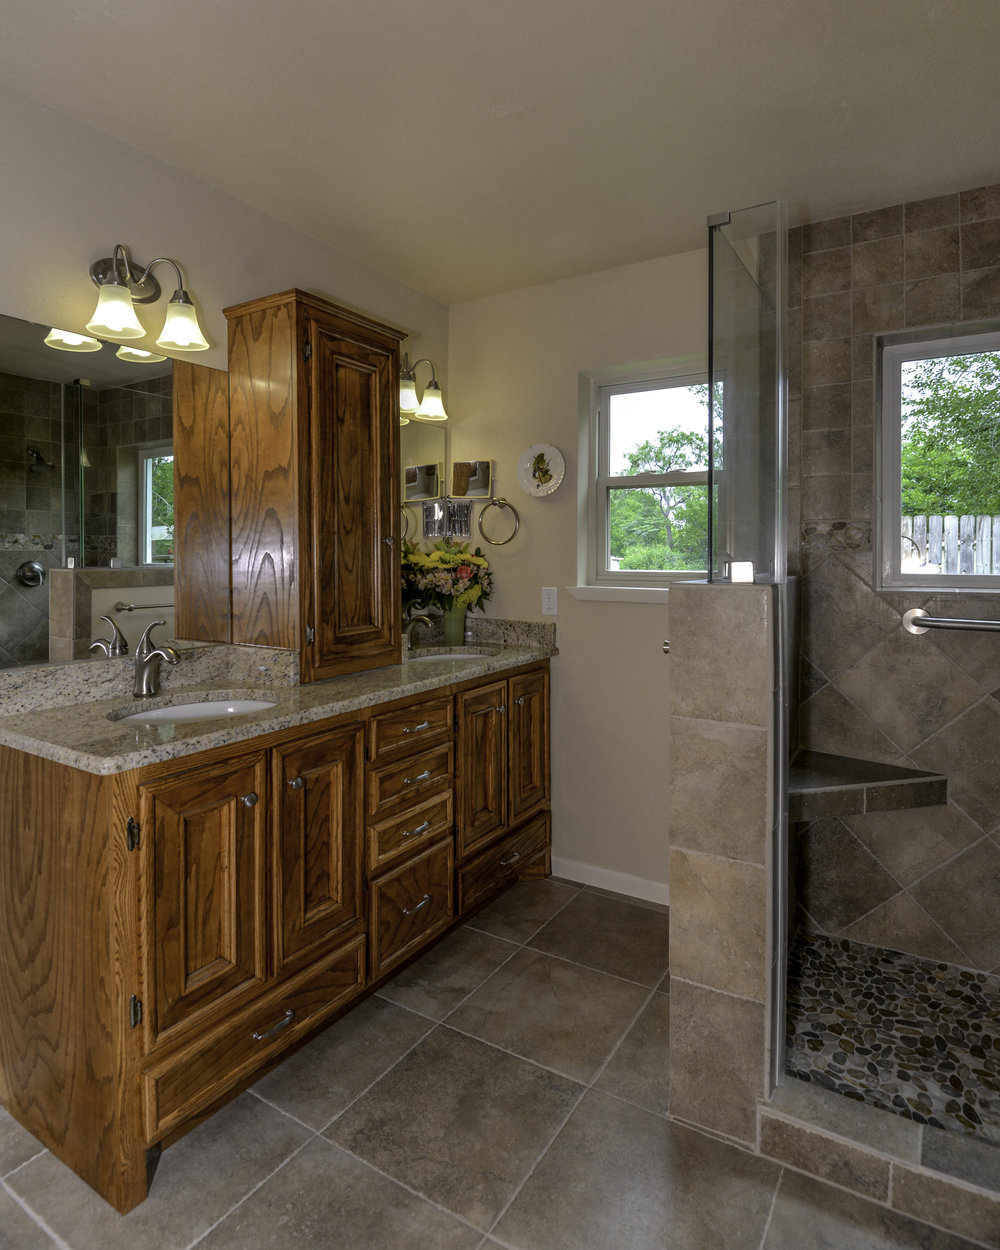 Bathroom remodel in Bryan / College Station, by Stearns Design Build.